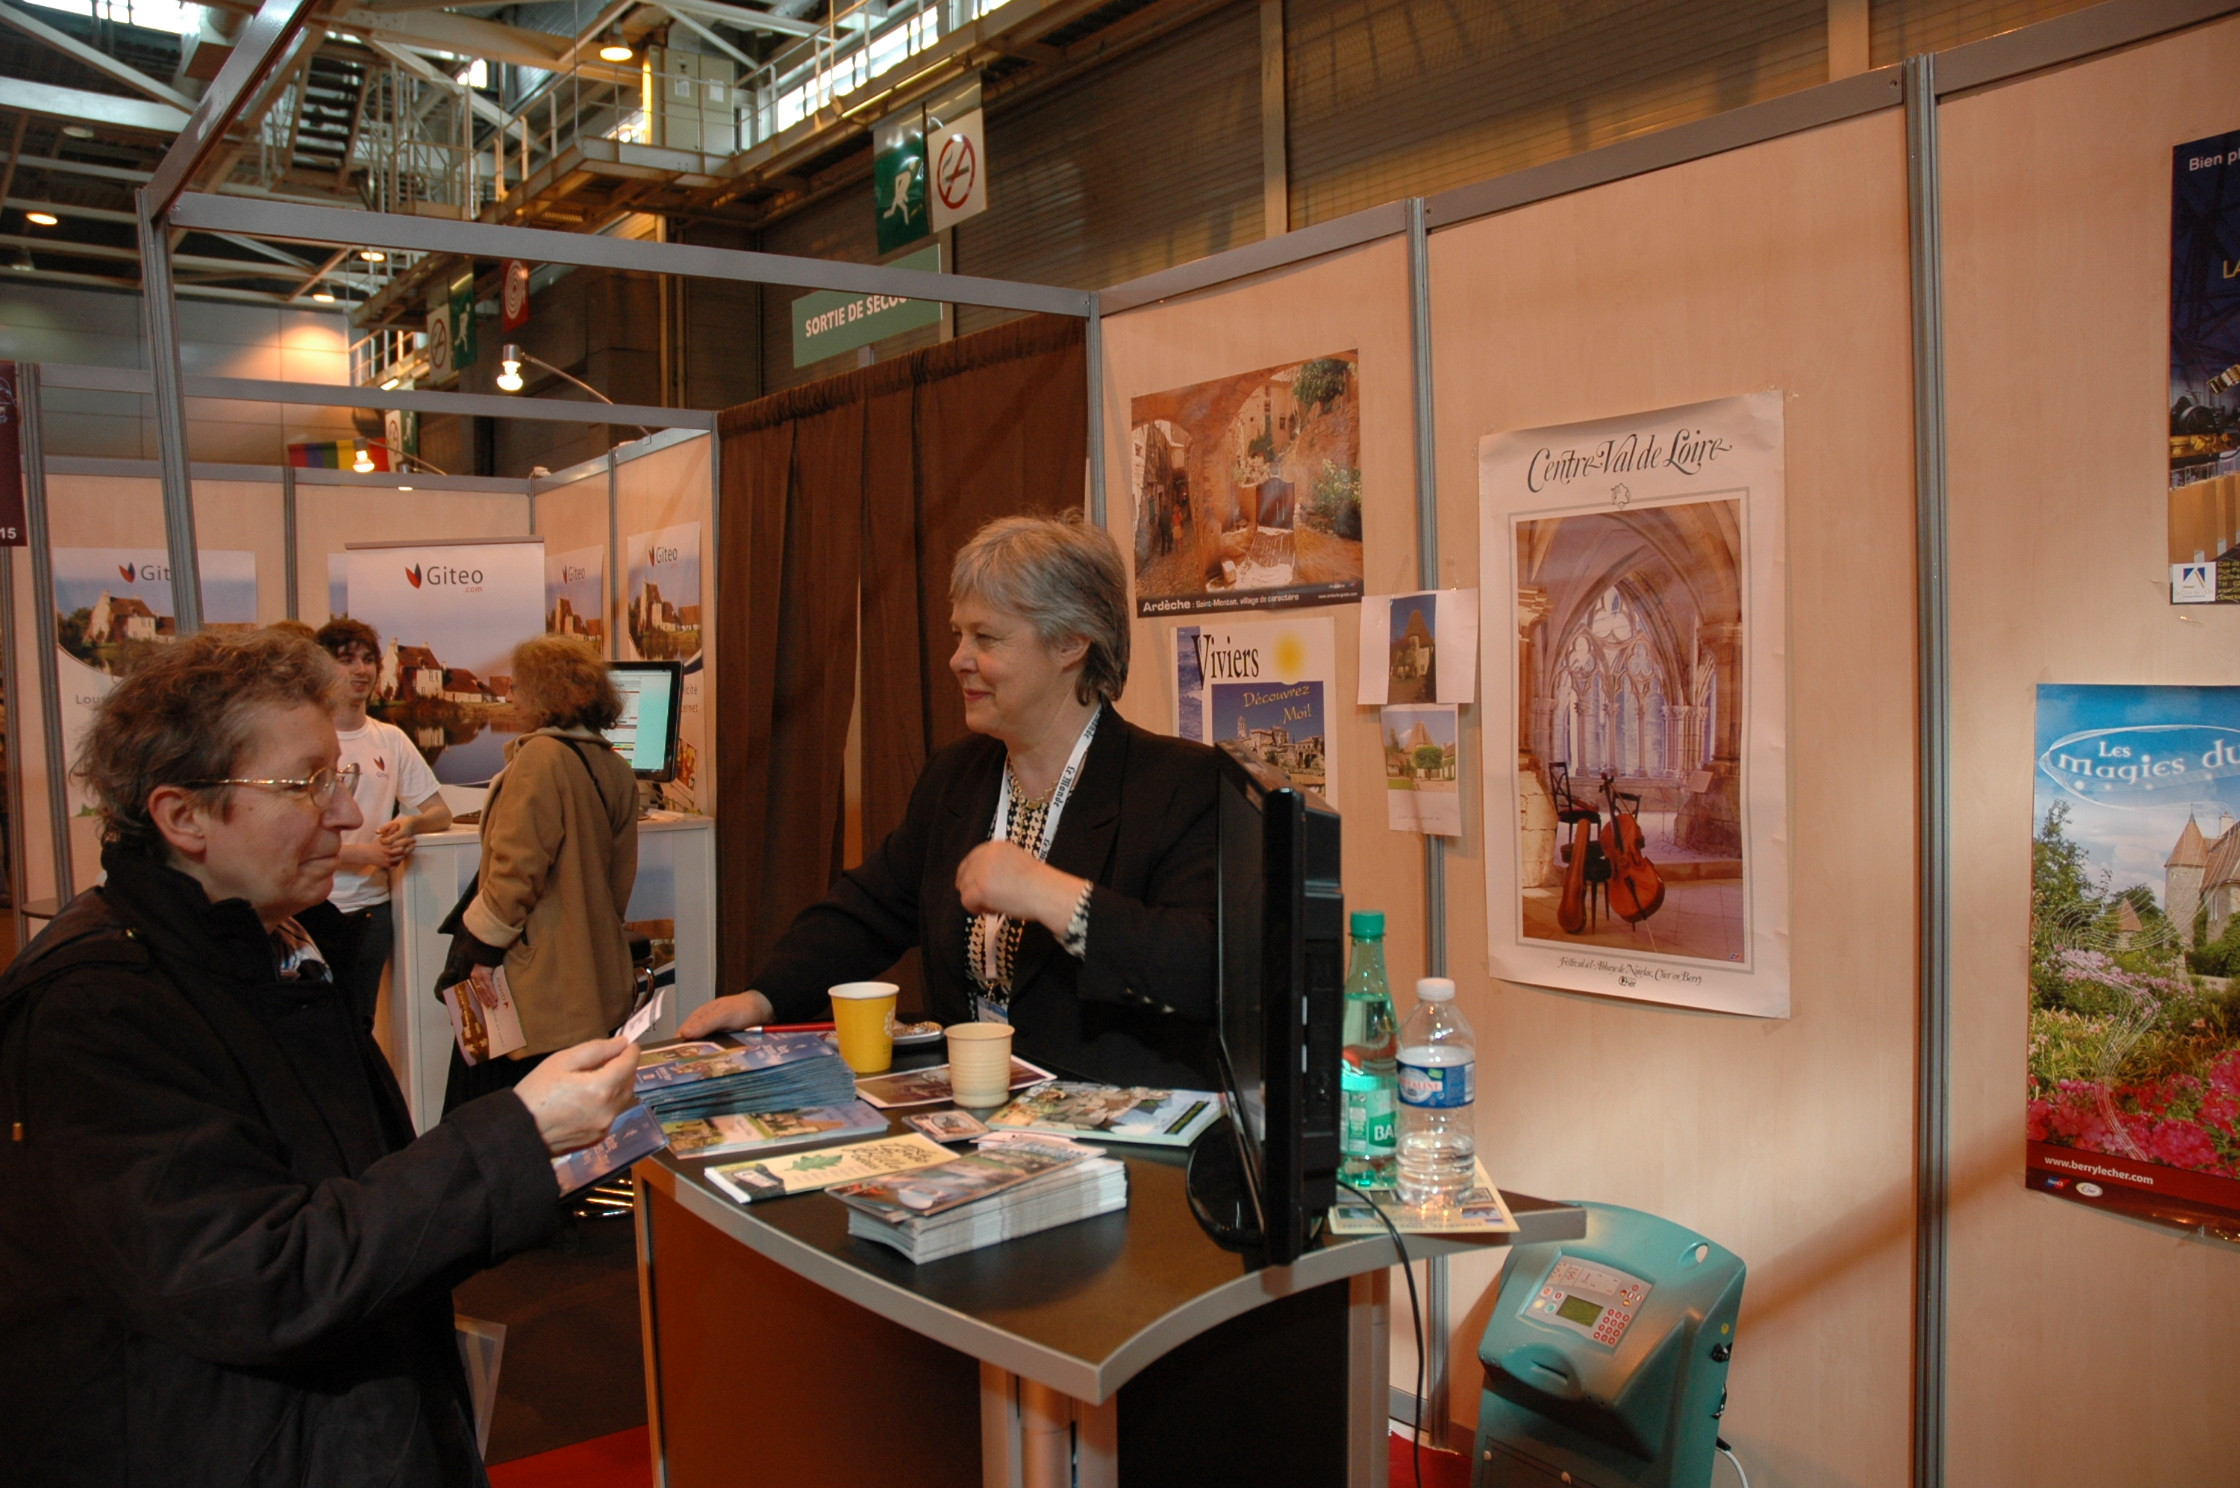 Map salon du tourisme paris association touristique - Salon tourisme paris ...